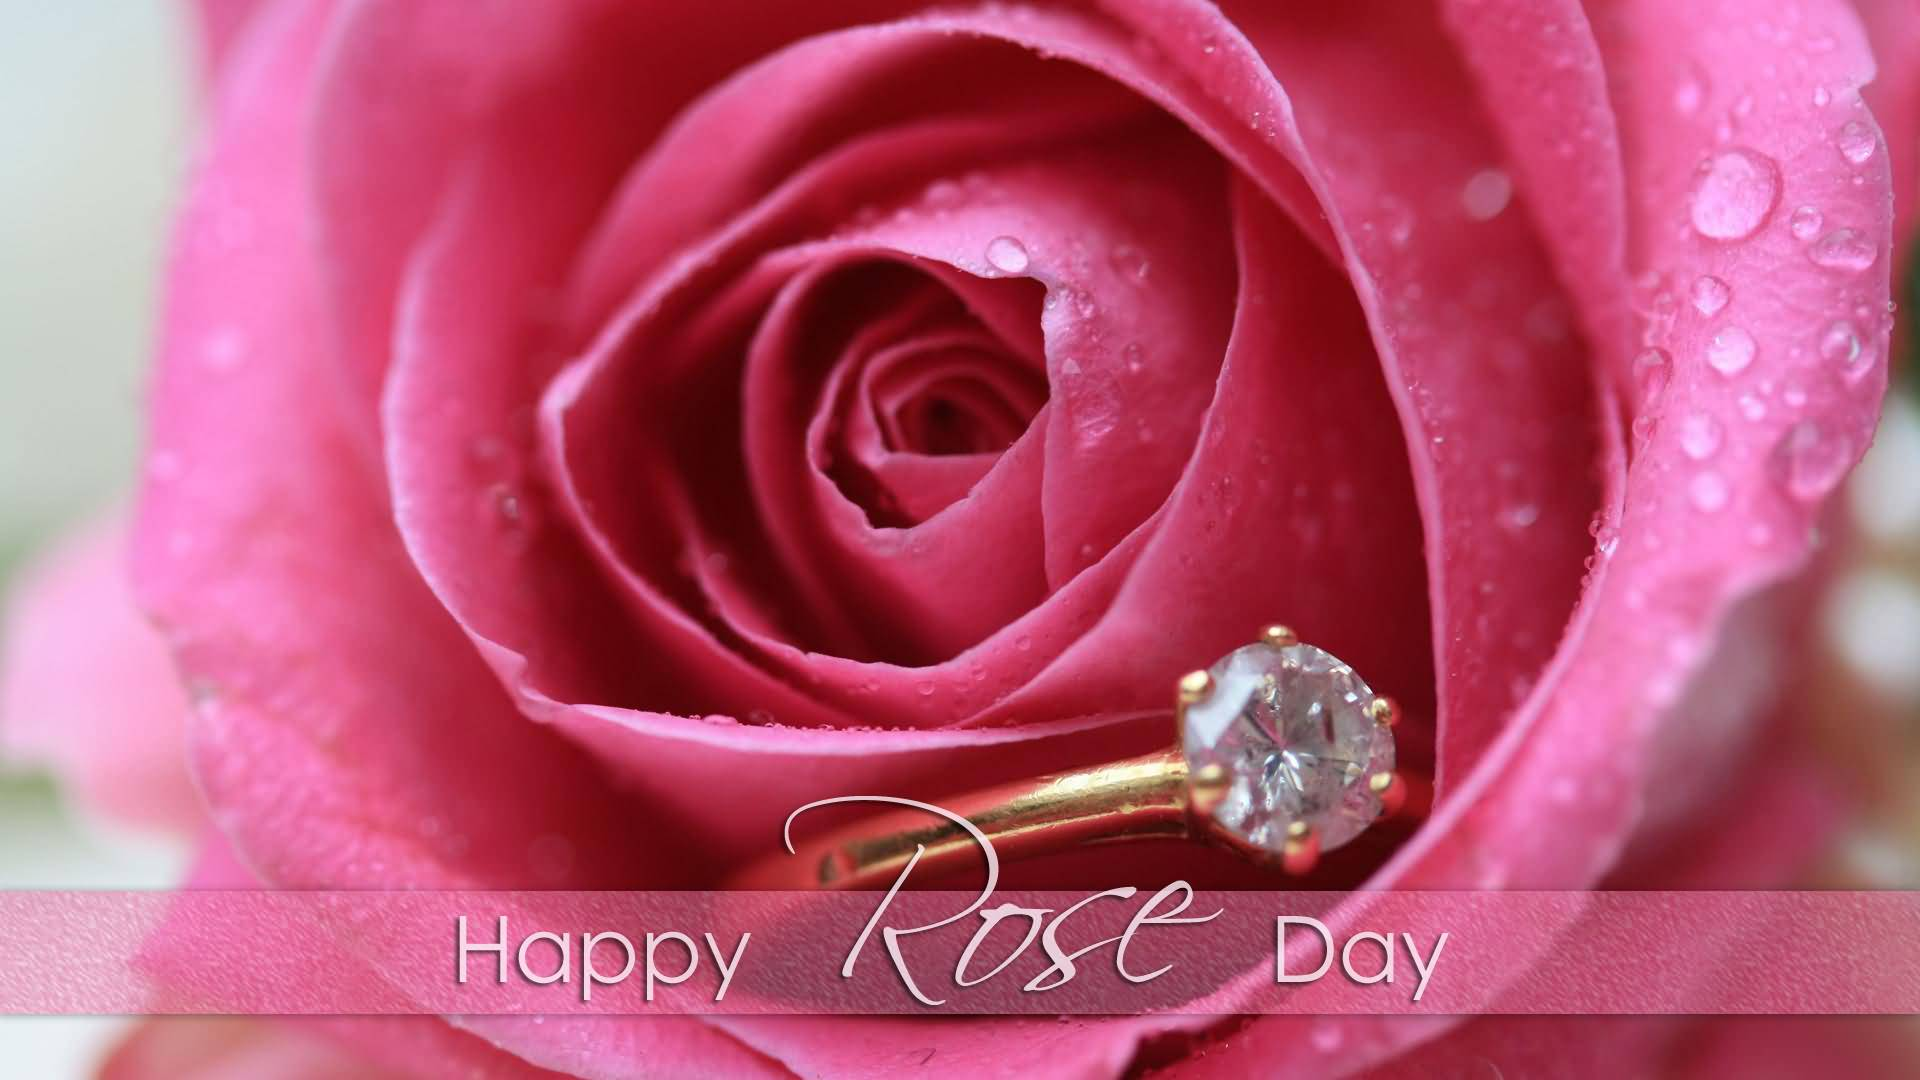 Happy Rose day hd image with ring roses wallpaper for beautiful love